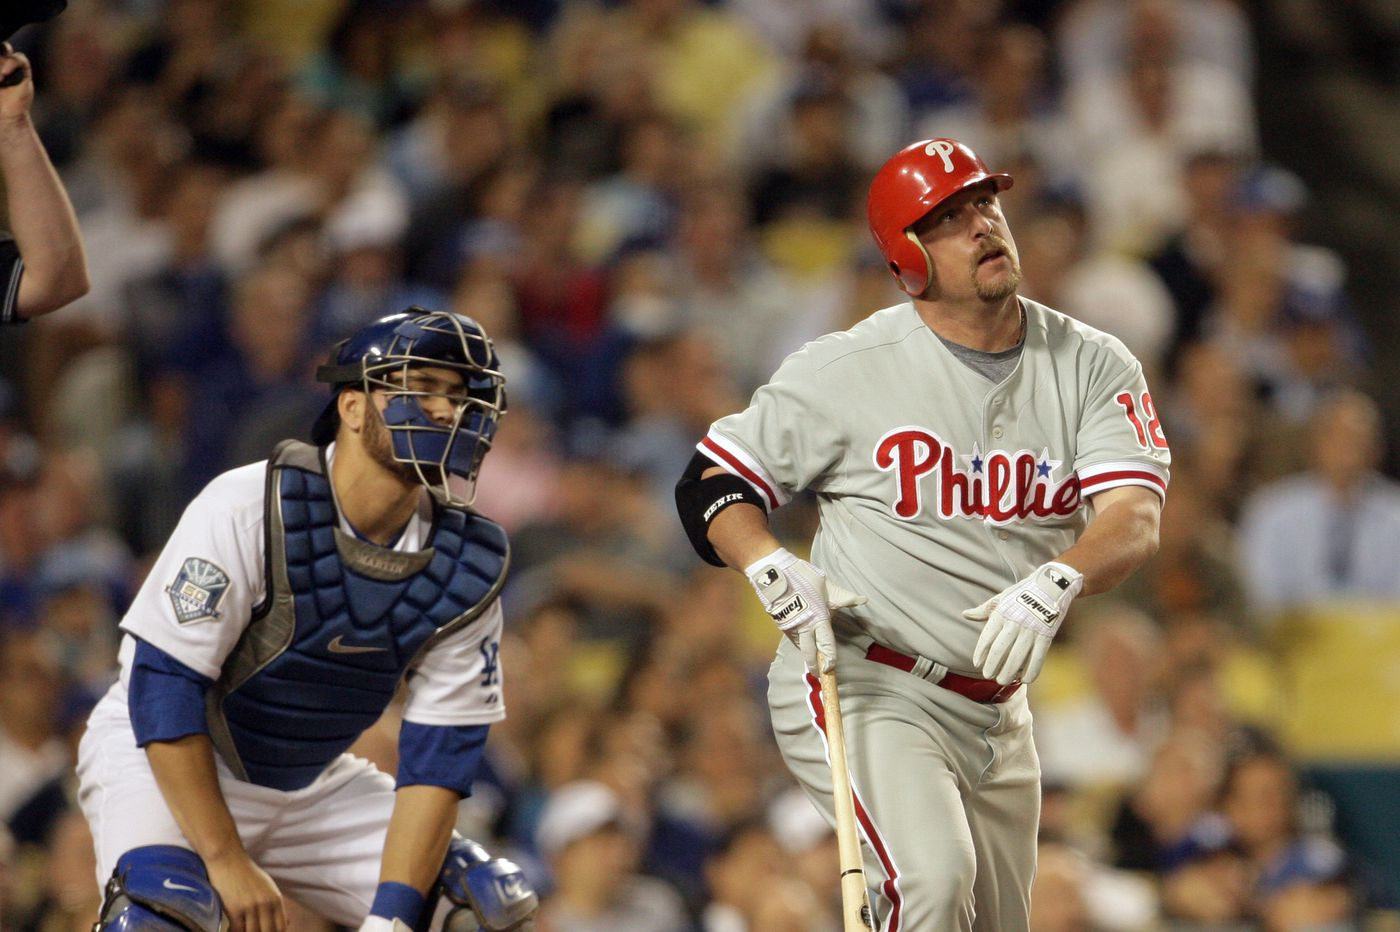 MLB's new designated-hitter rule could phase out what Matt Stairs did best | Matt Breen